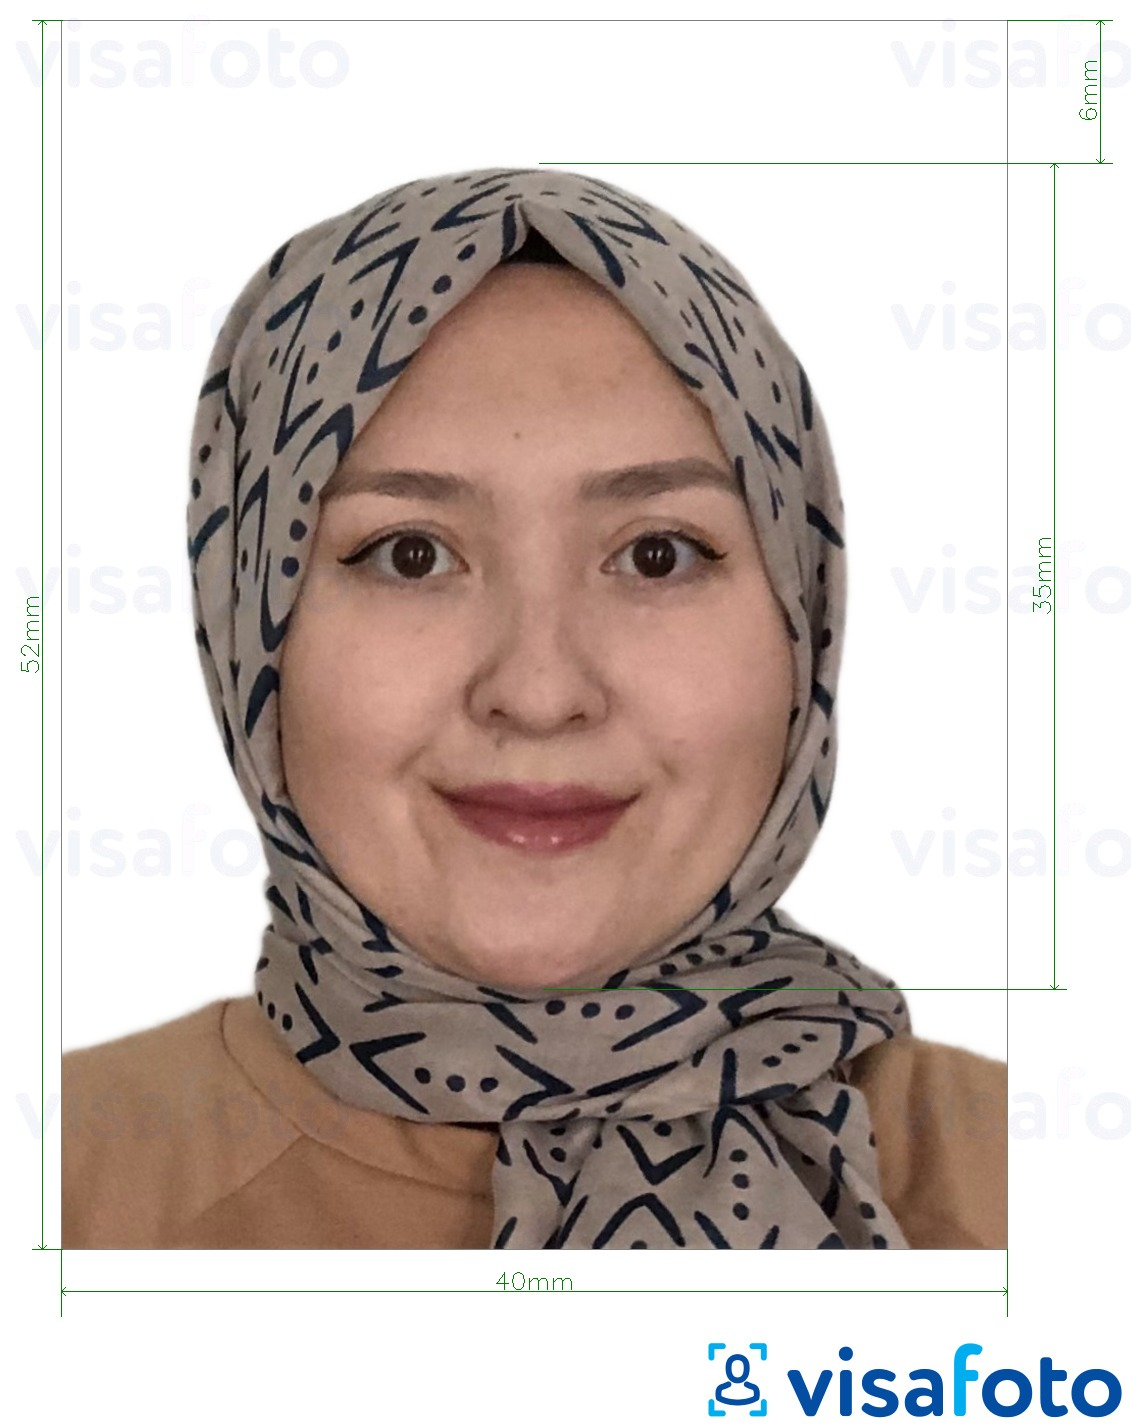 Example of photo for Brunei passport 5.2x4 cm (52x40 mm) with exact size specification